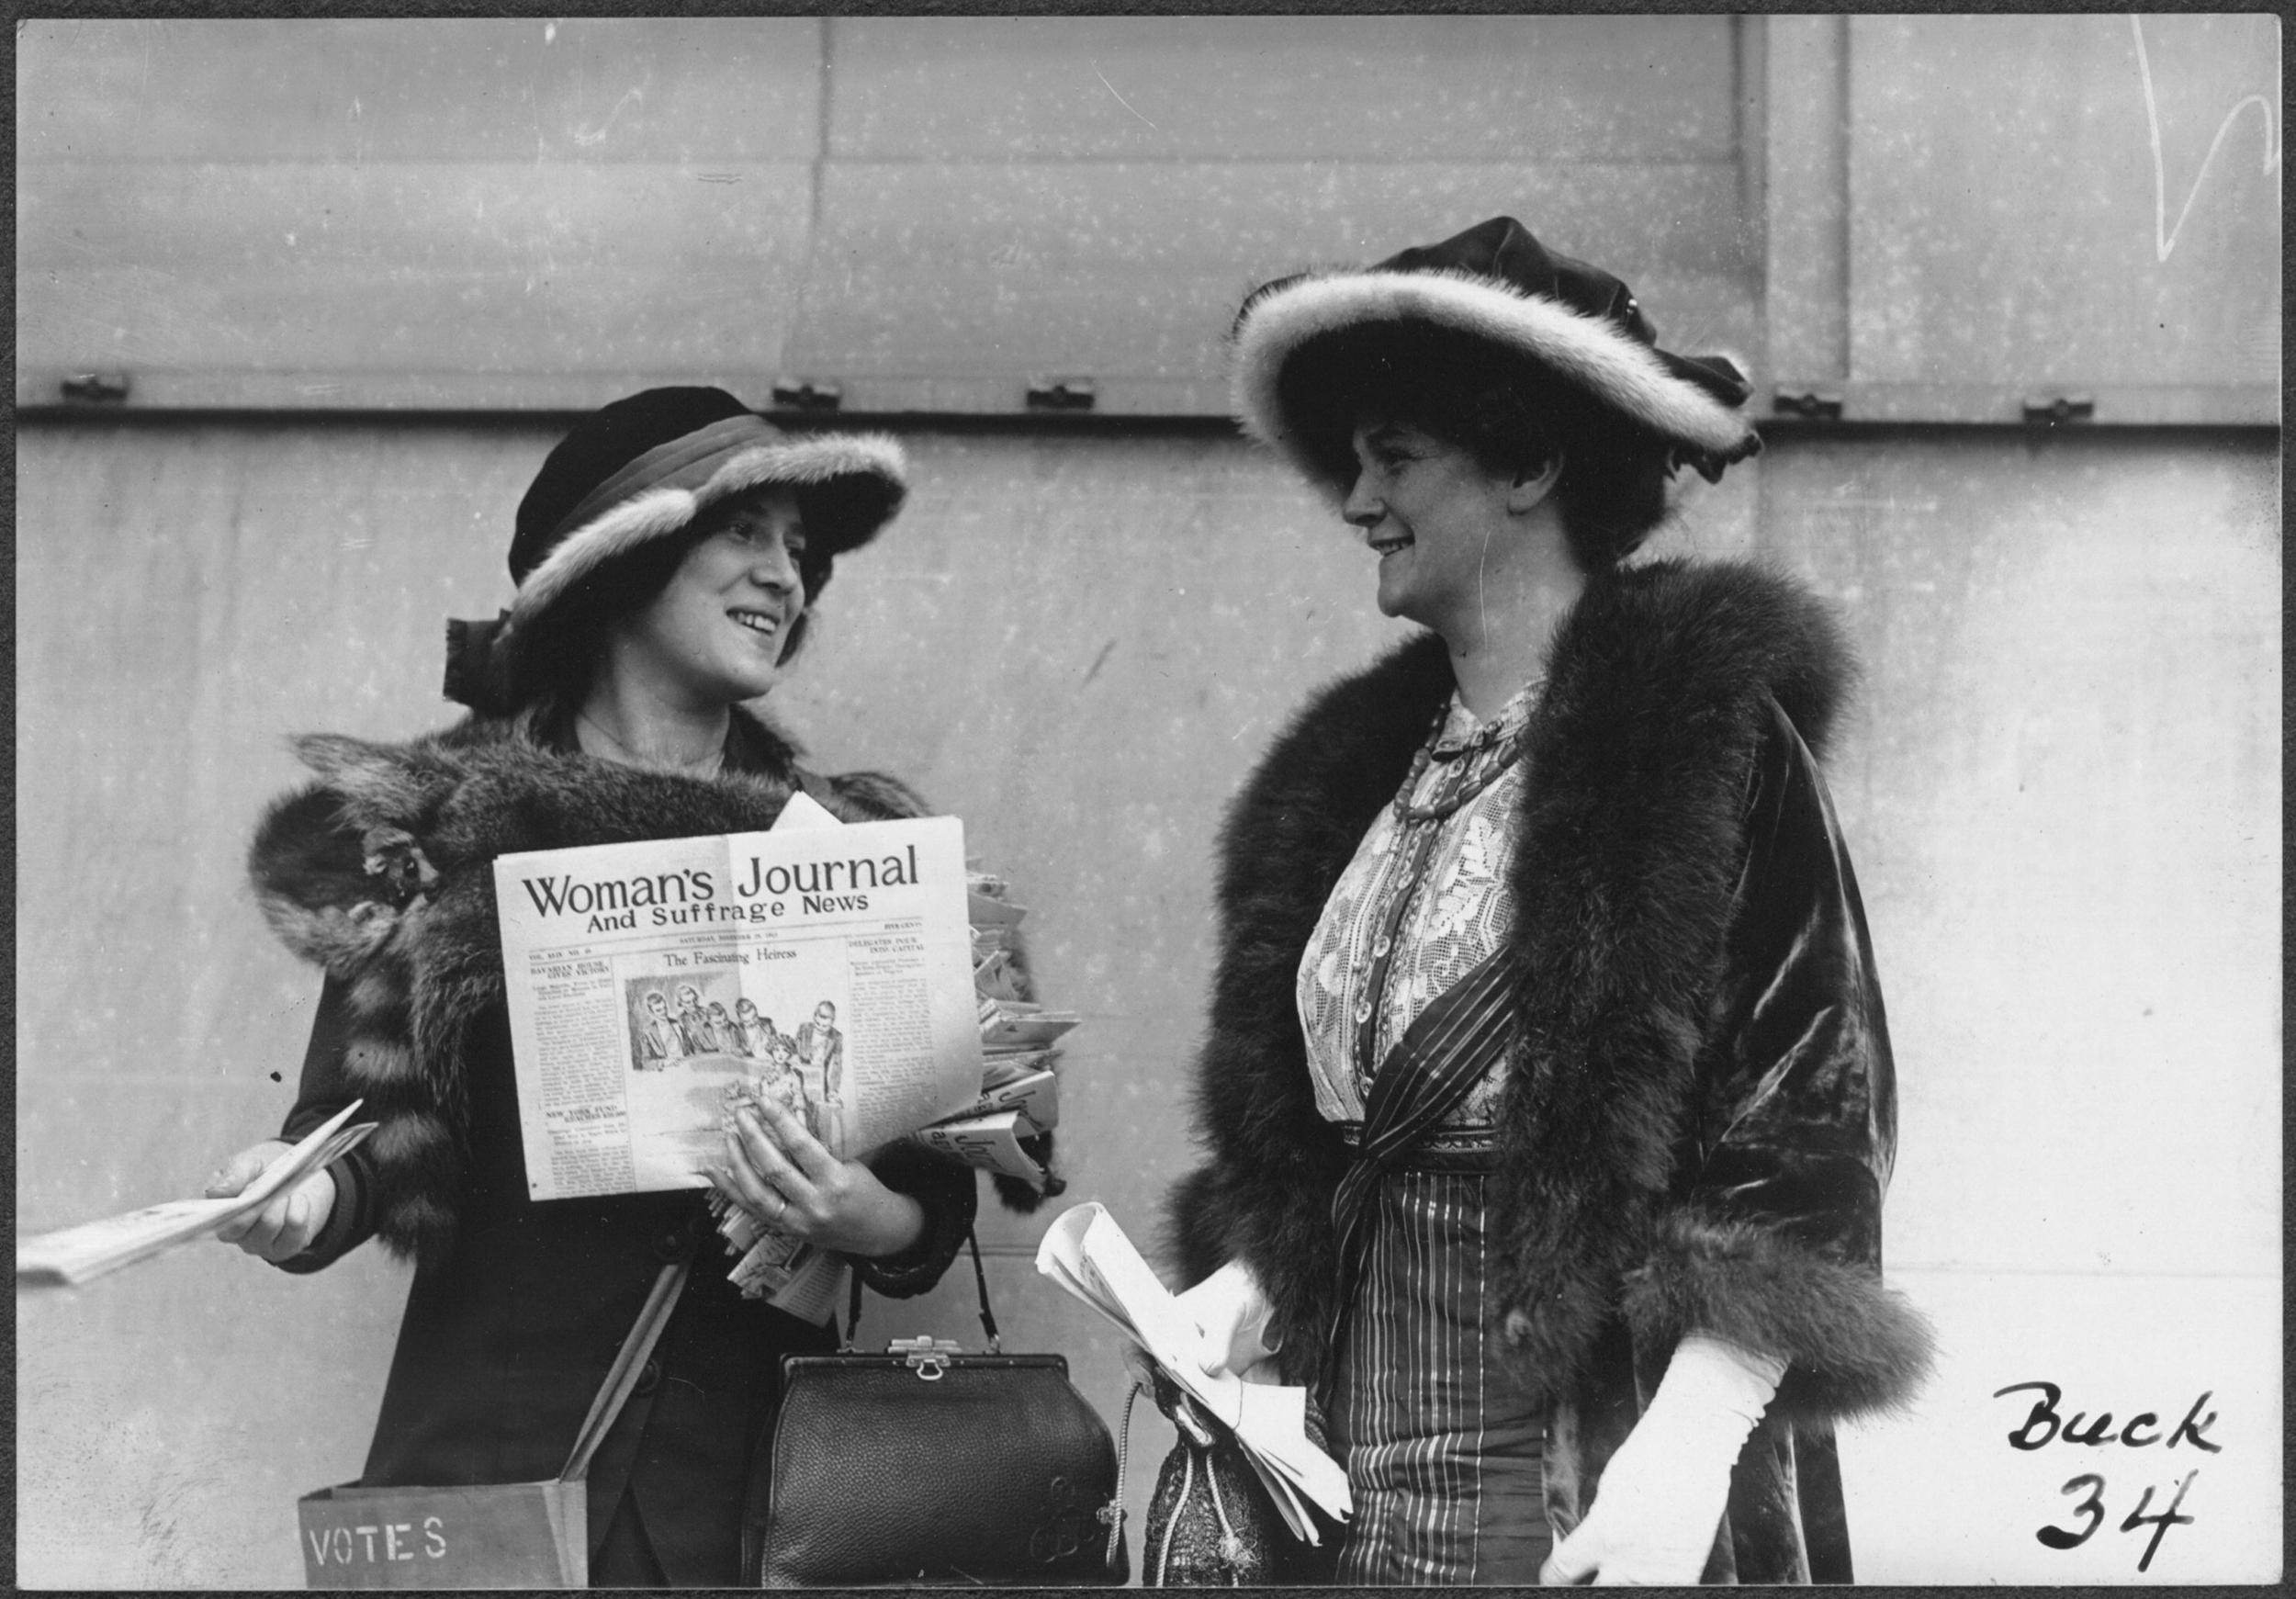 Margaret Foley distributing the Woman's Journal, library of congress.